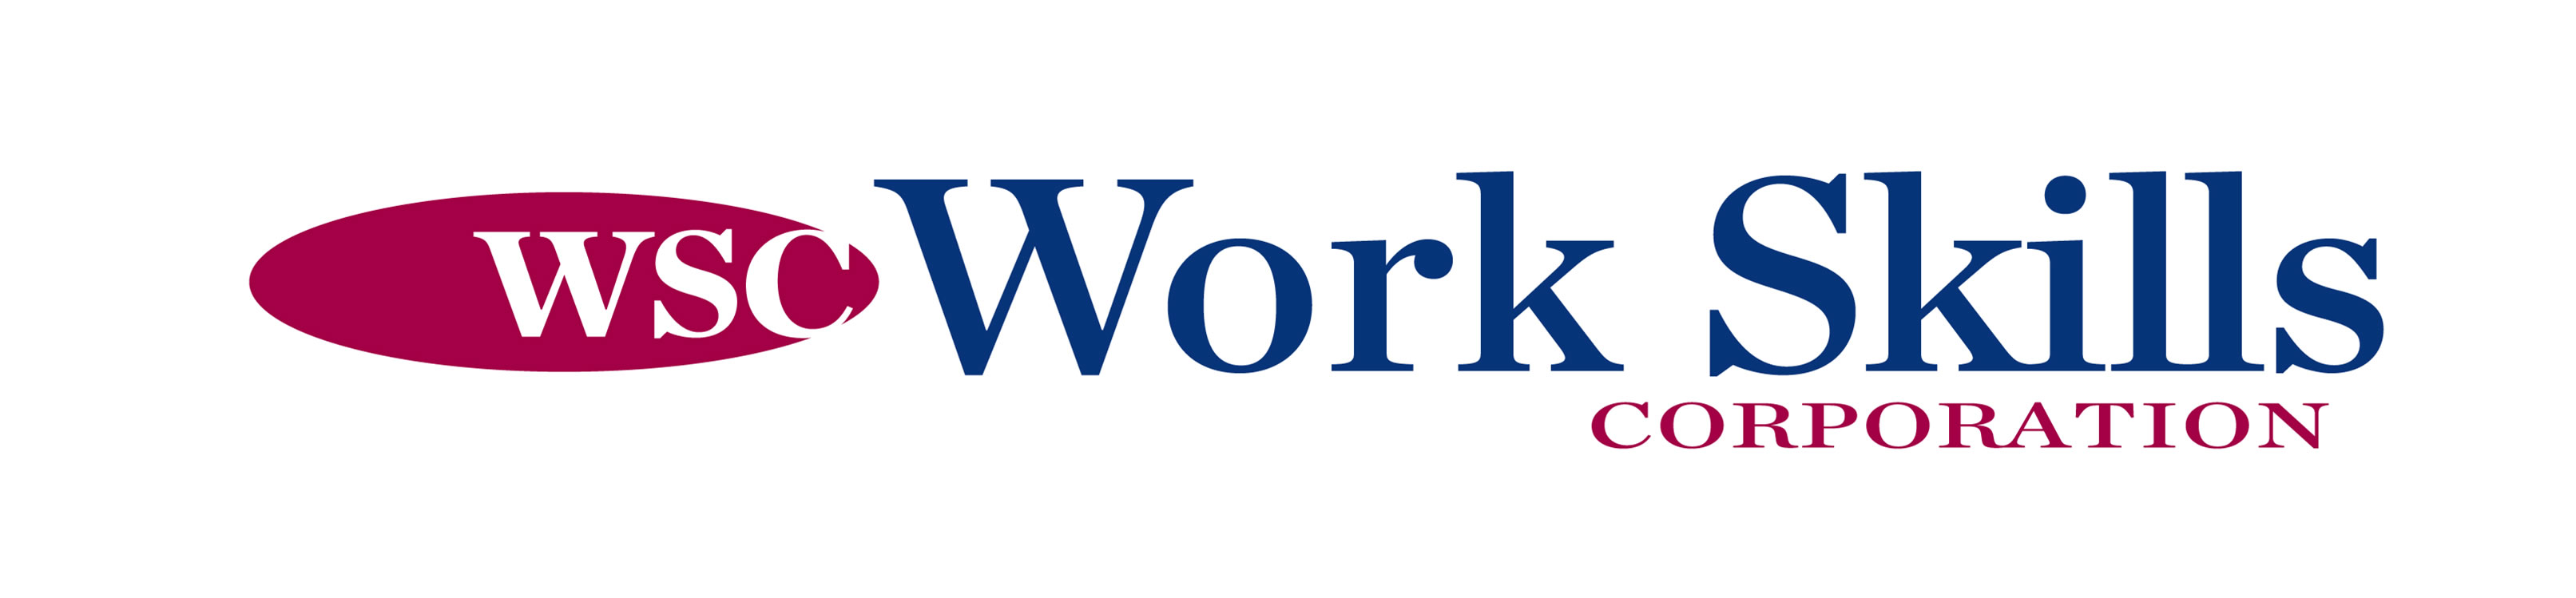 Work Skills Corporation Single_1.jpg